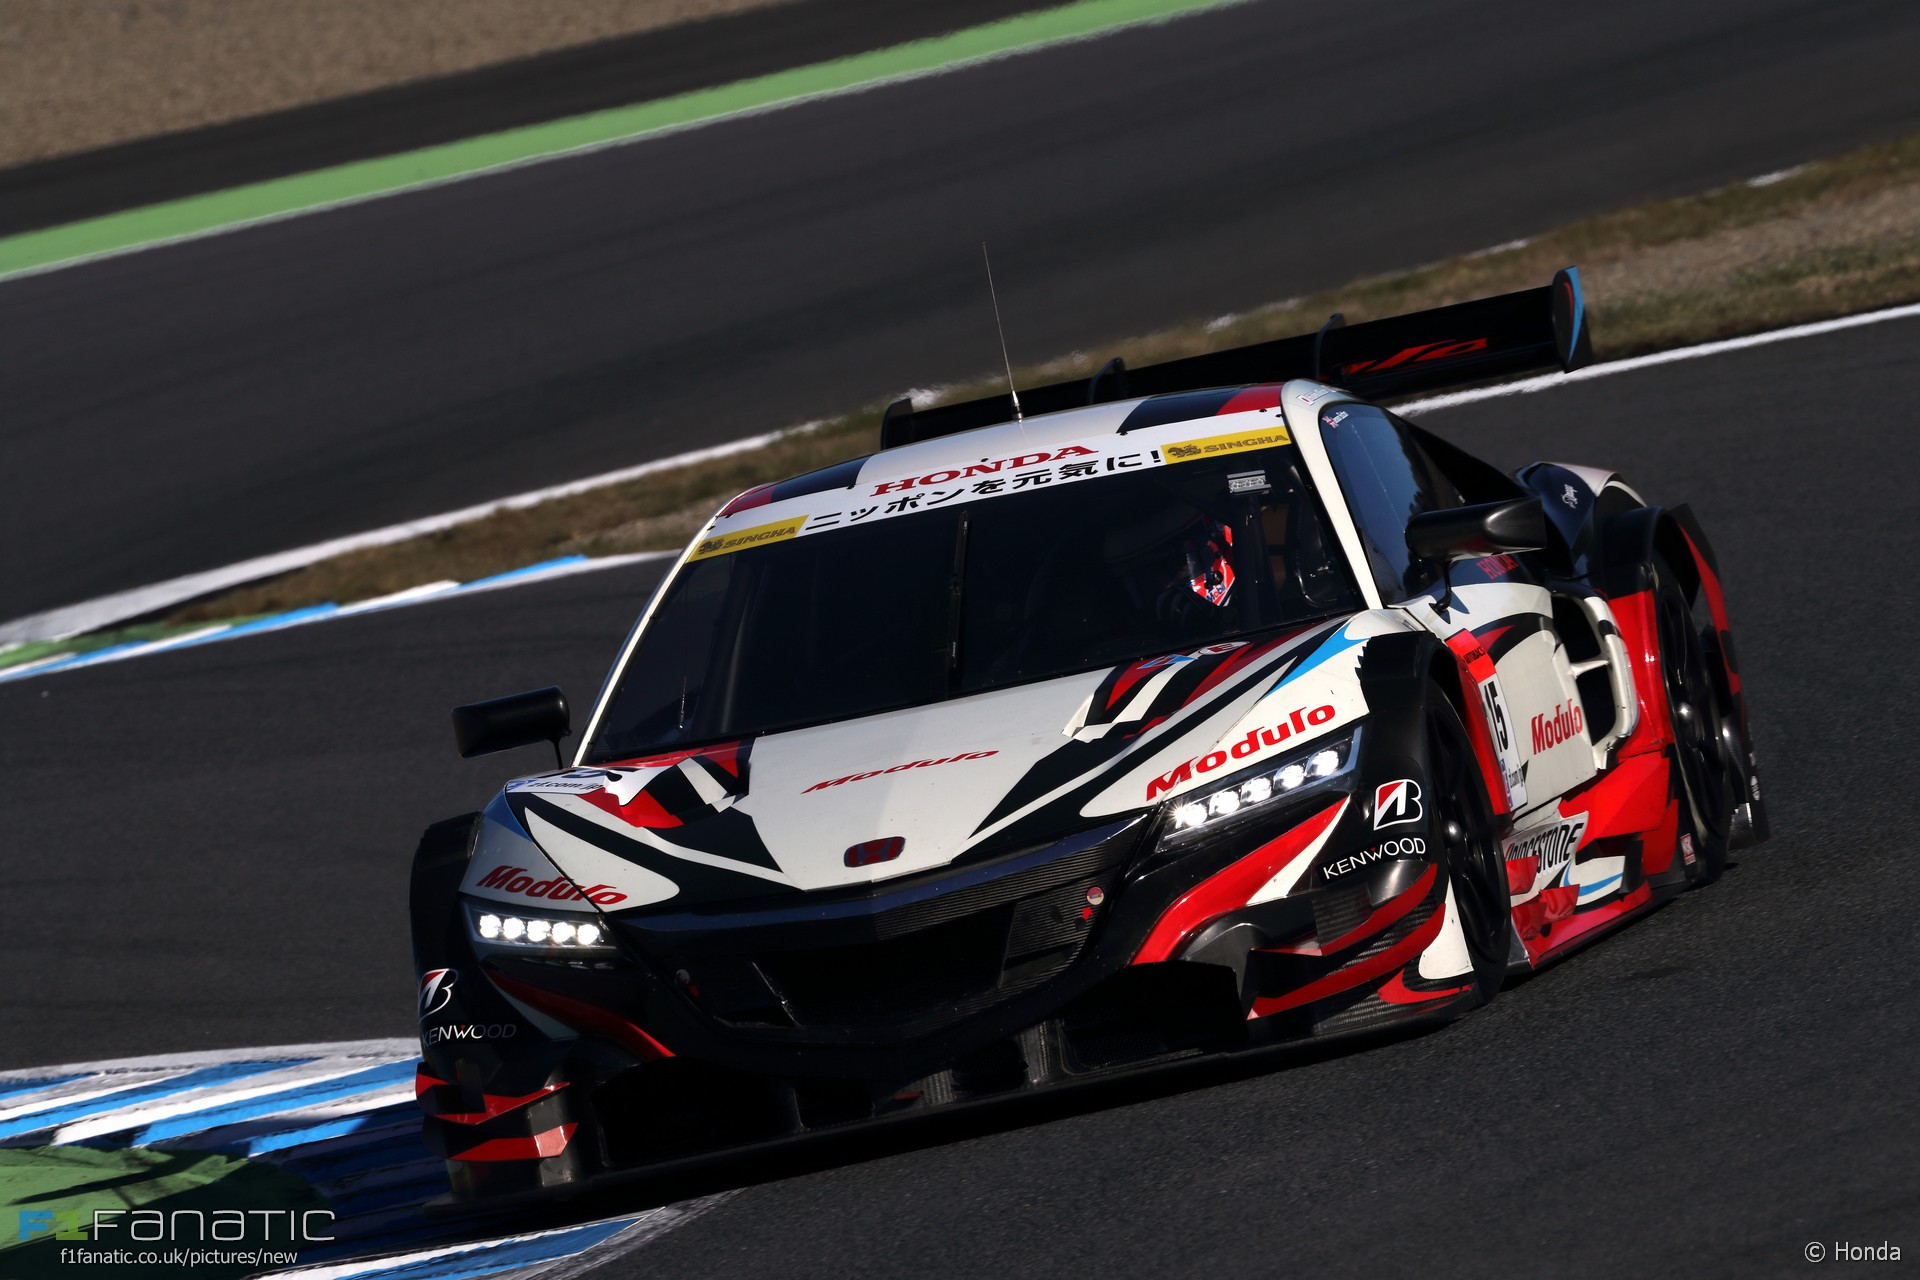 JENSON BUTTON SUR LA NSX